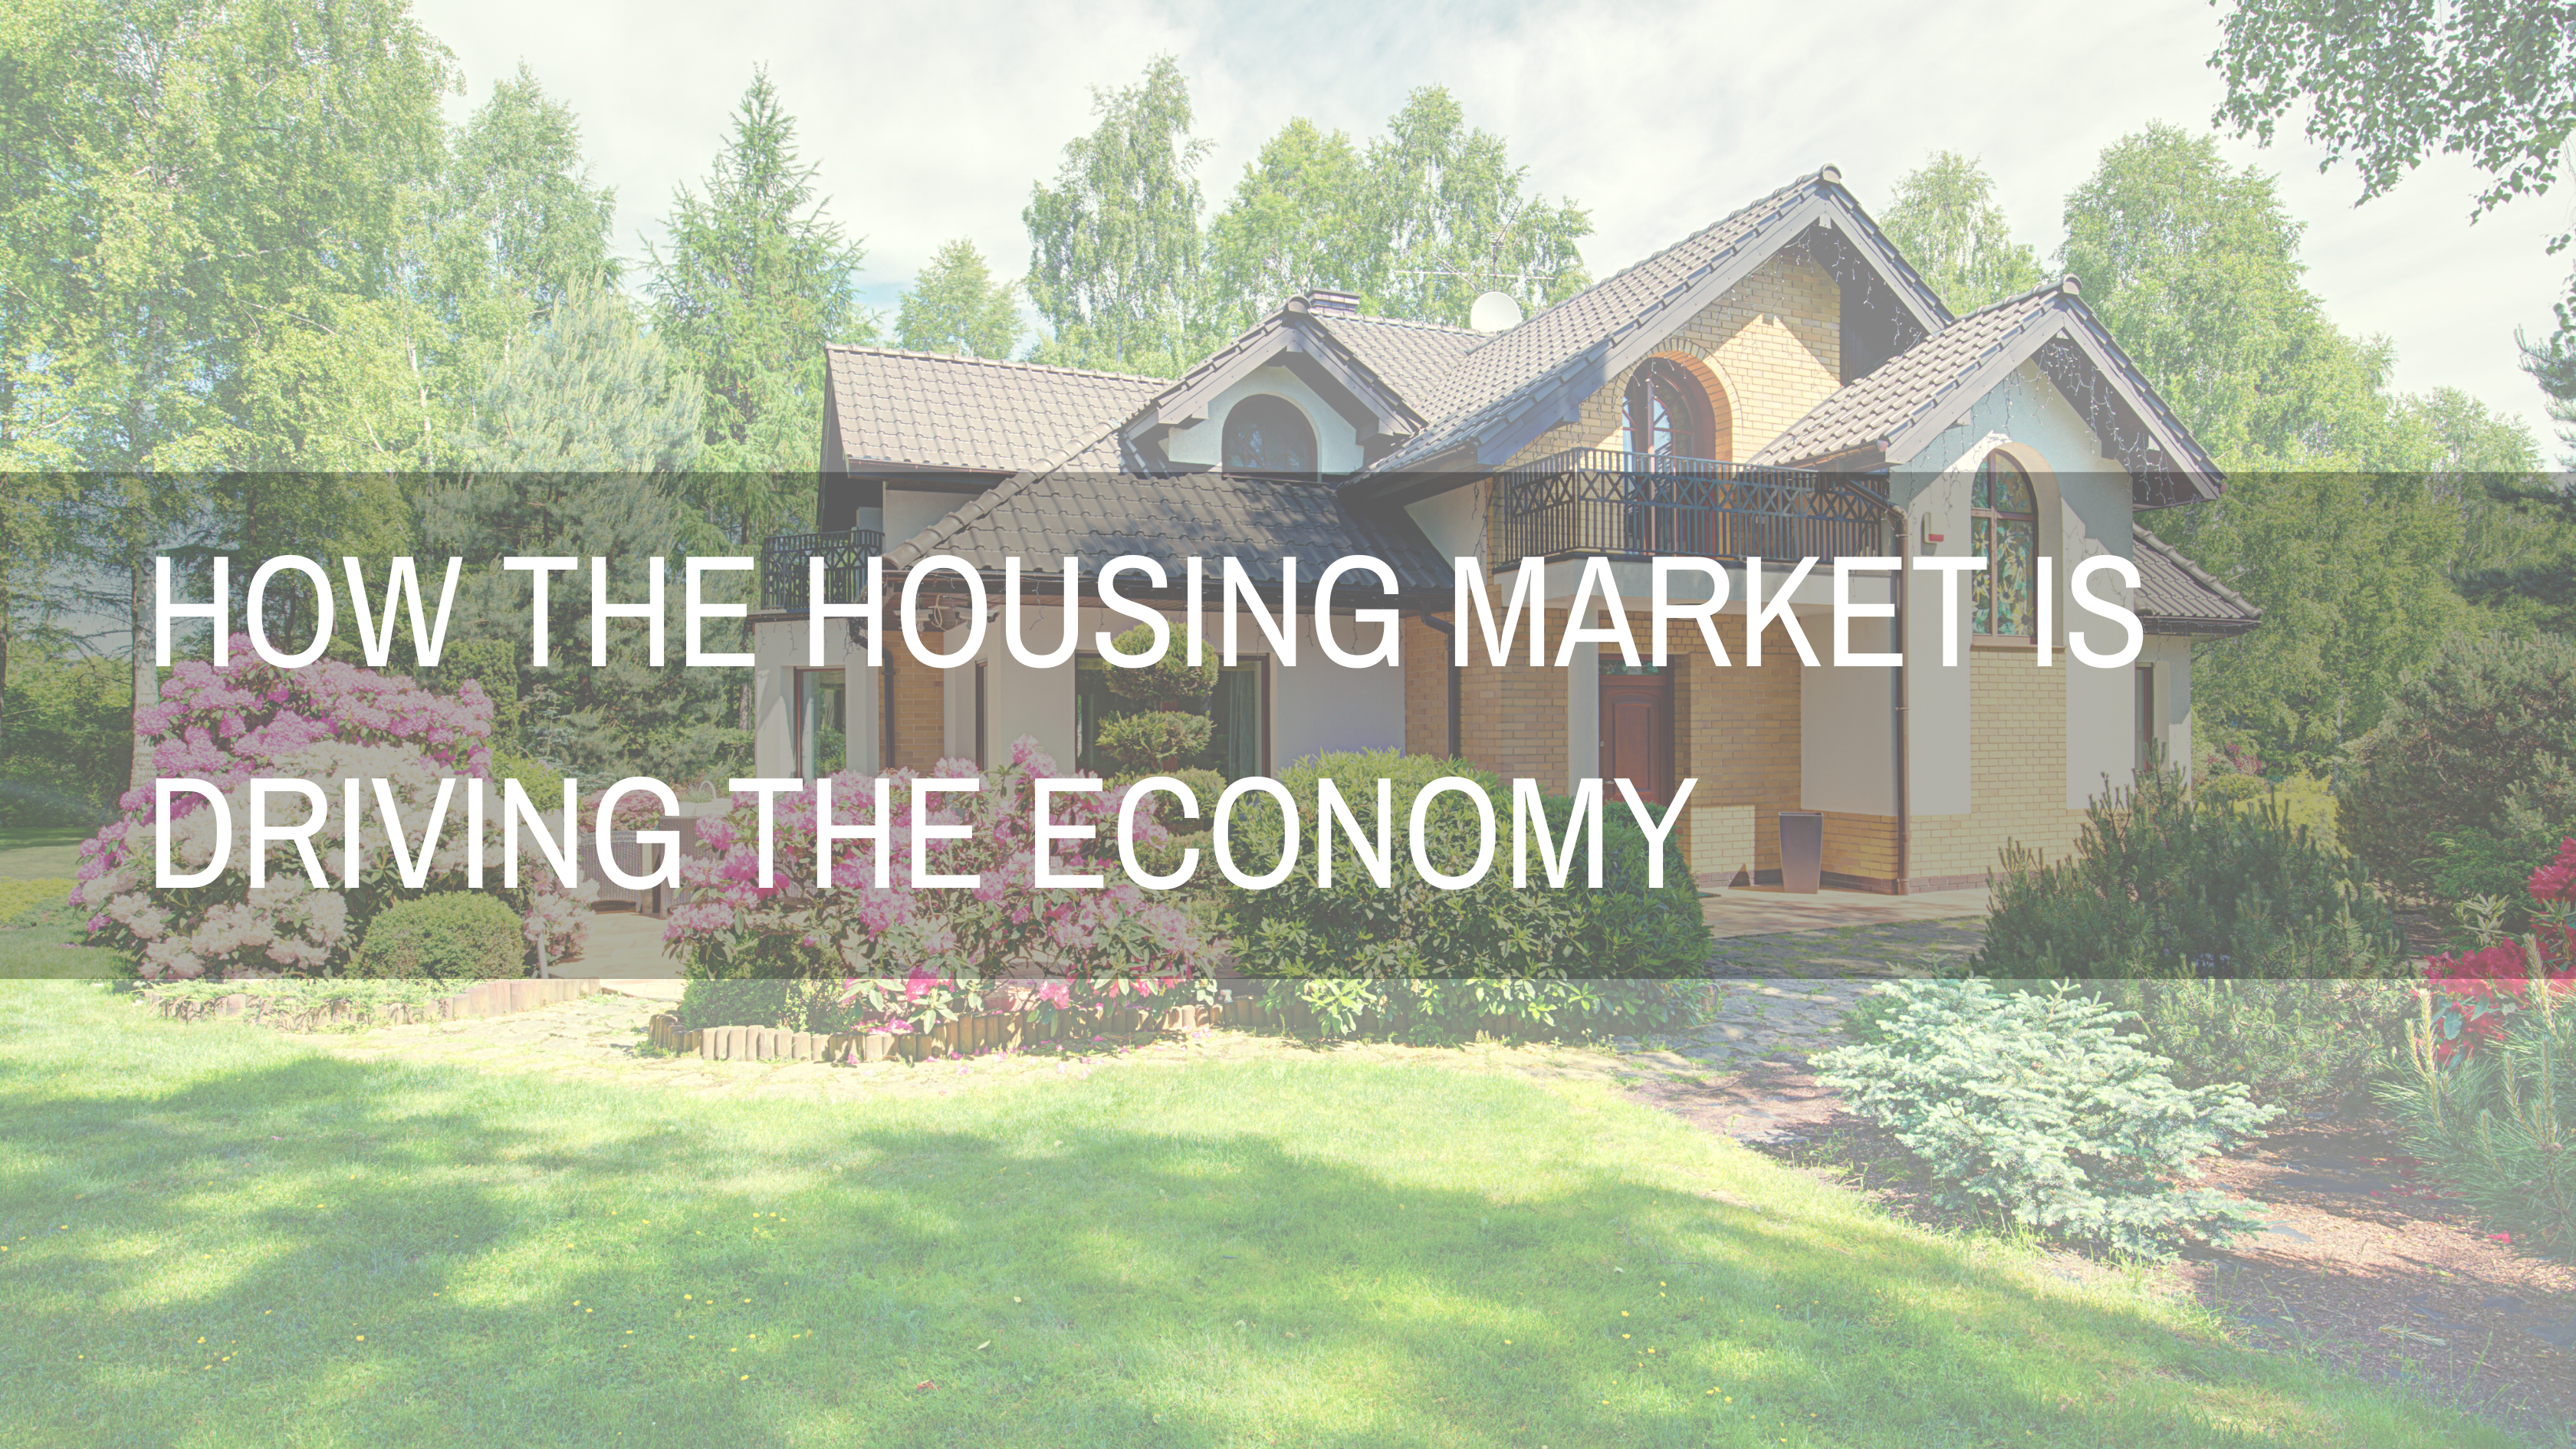 housing market is driving the economy